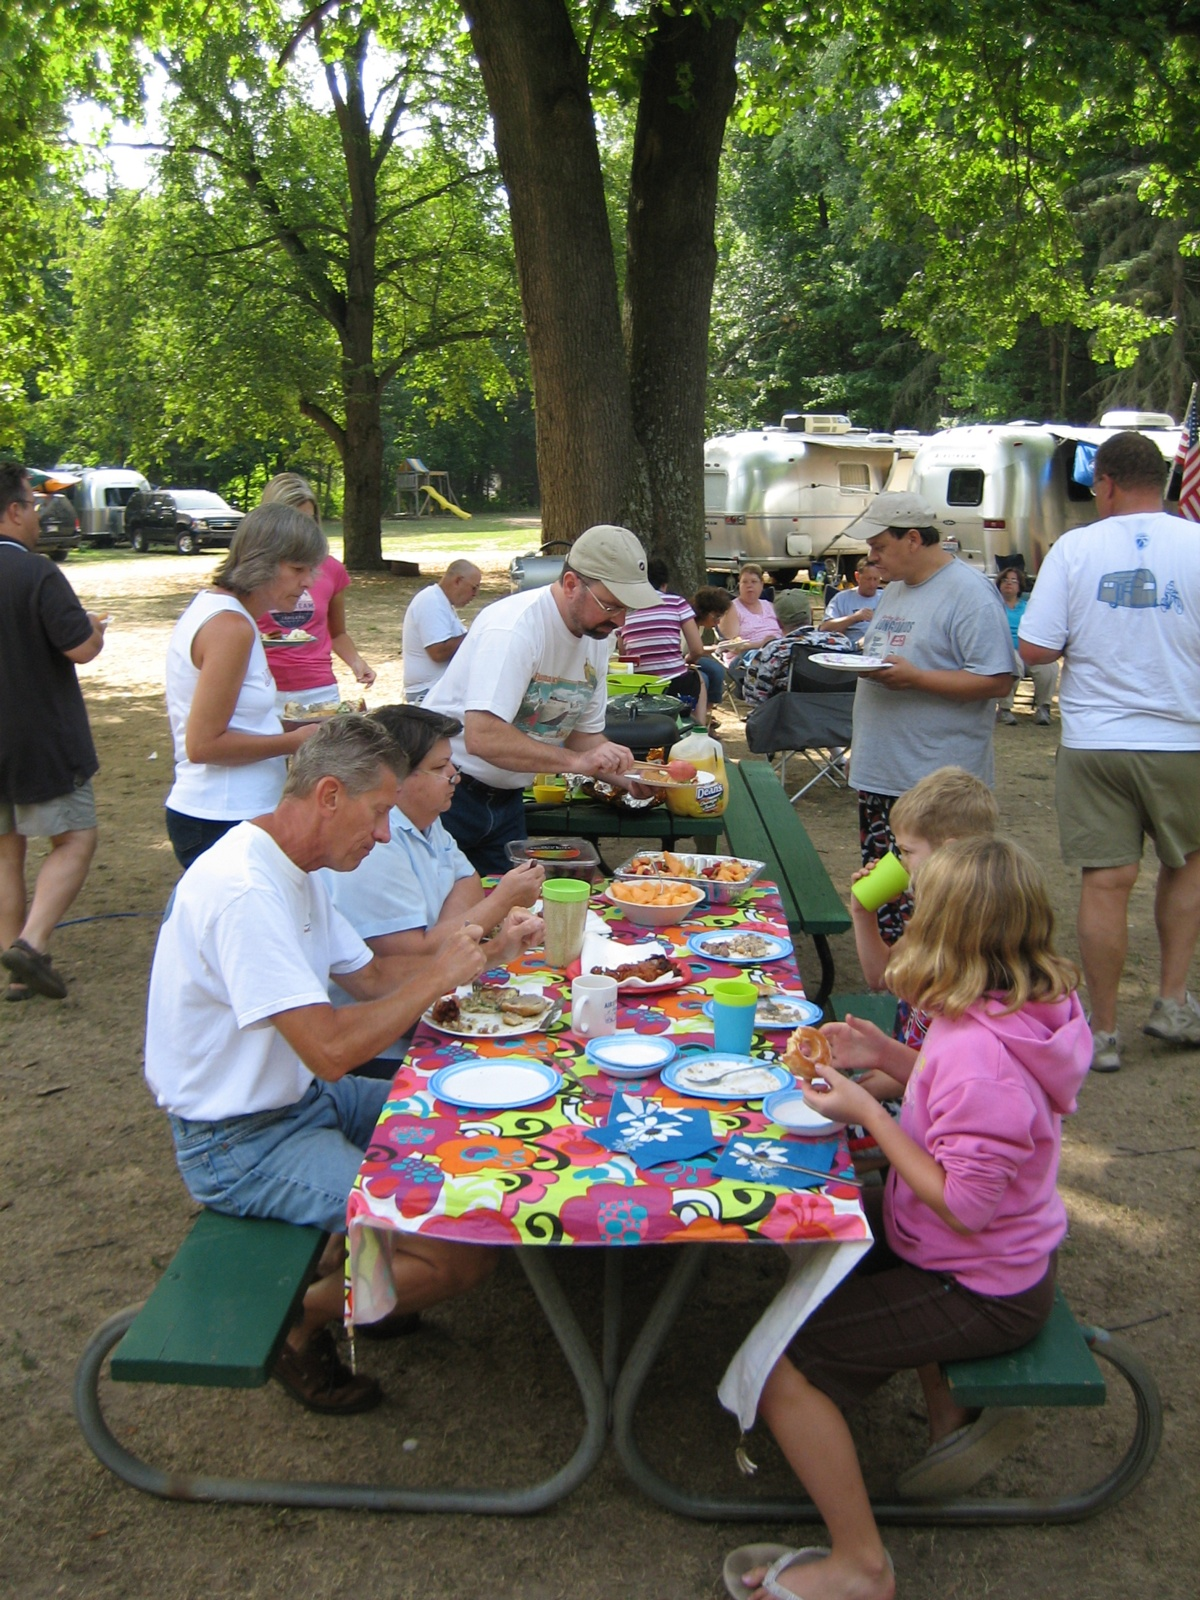 Click image for larger version  Name:Pot Luck Breakfast #3.jpg Views:63 Size:776.1 KB ID:42944